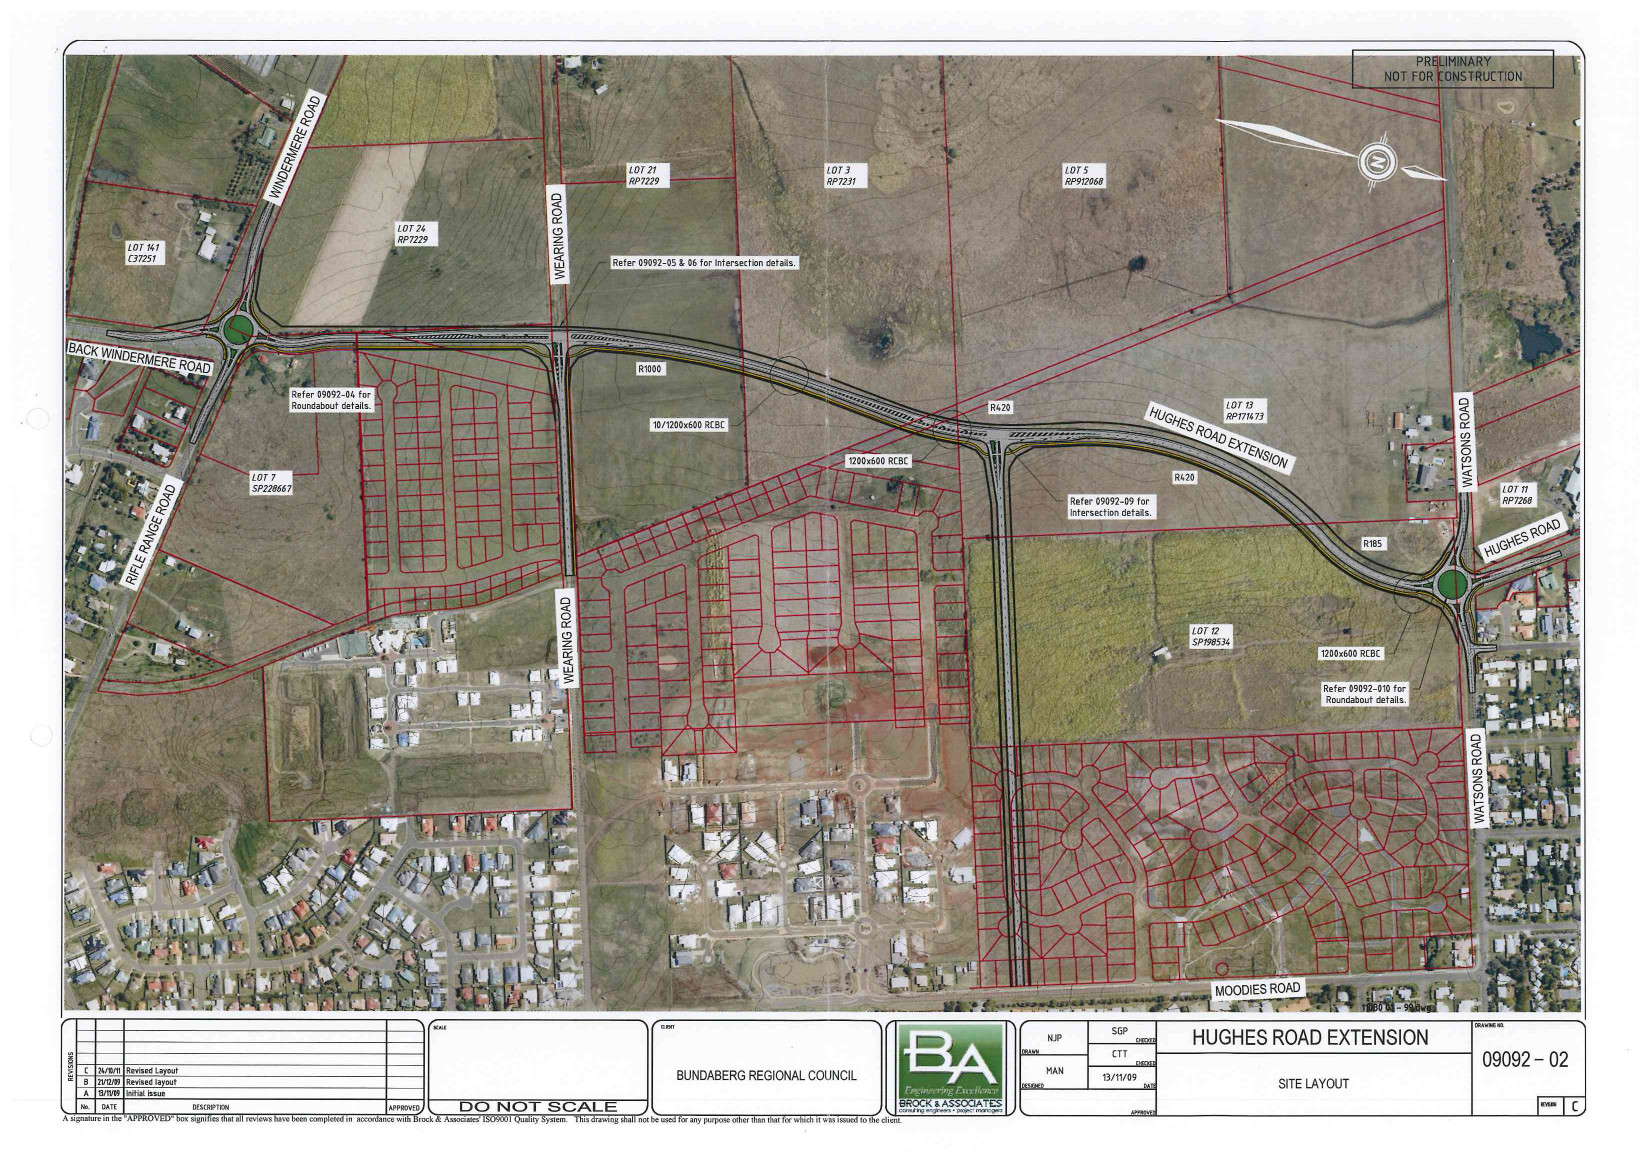 Hughes Rd Ext Alignment - Adopted by Council